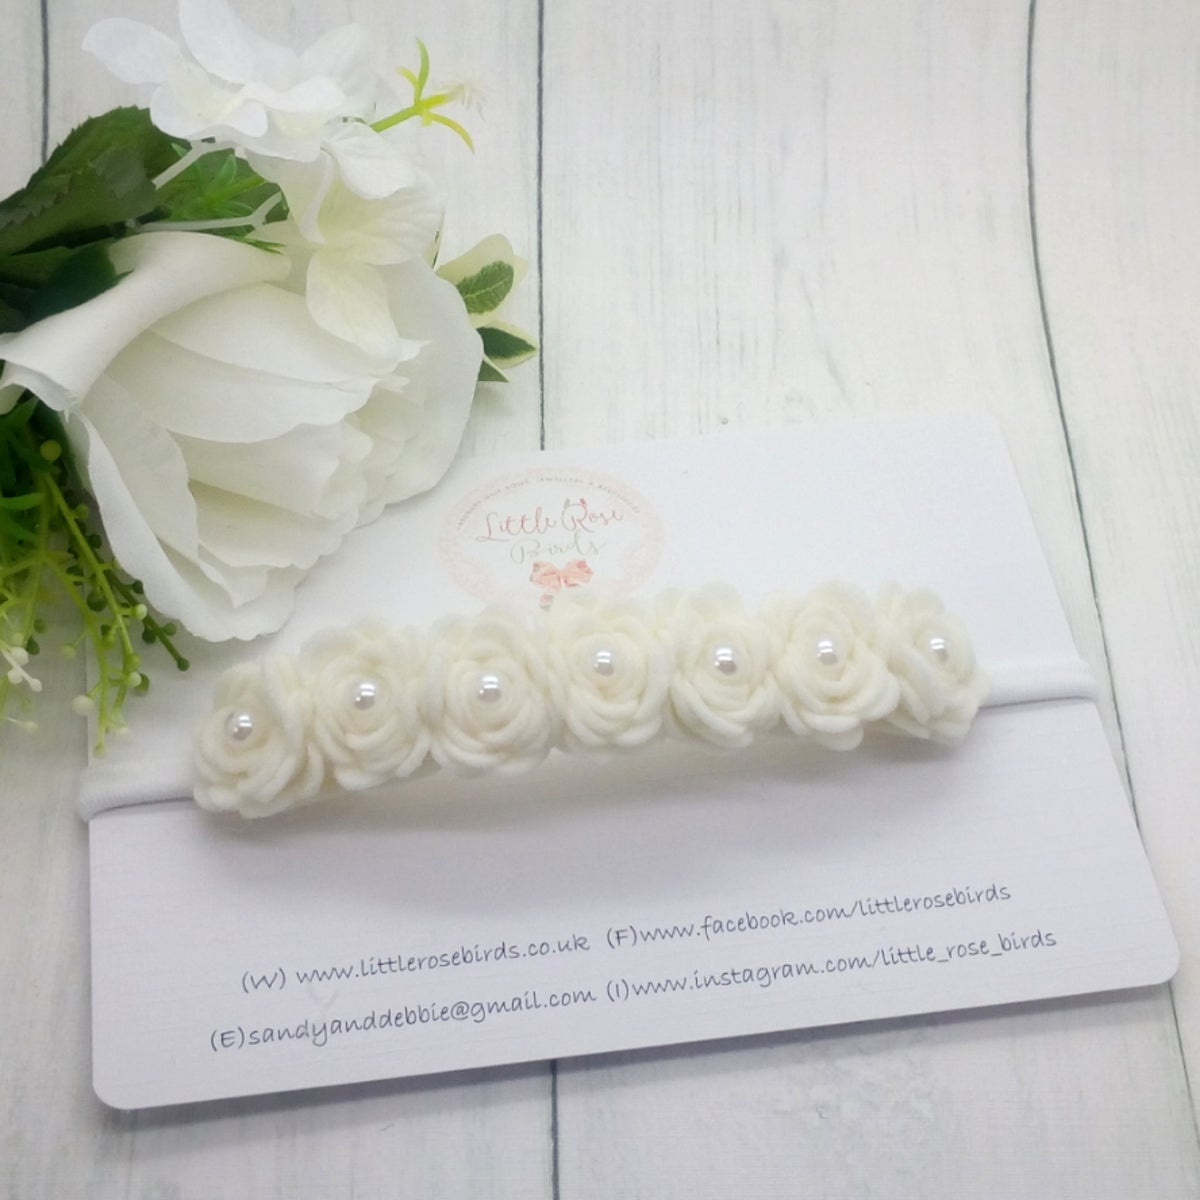 Image of Luxury White Rose Headband - 7 Rose Headband